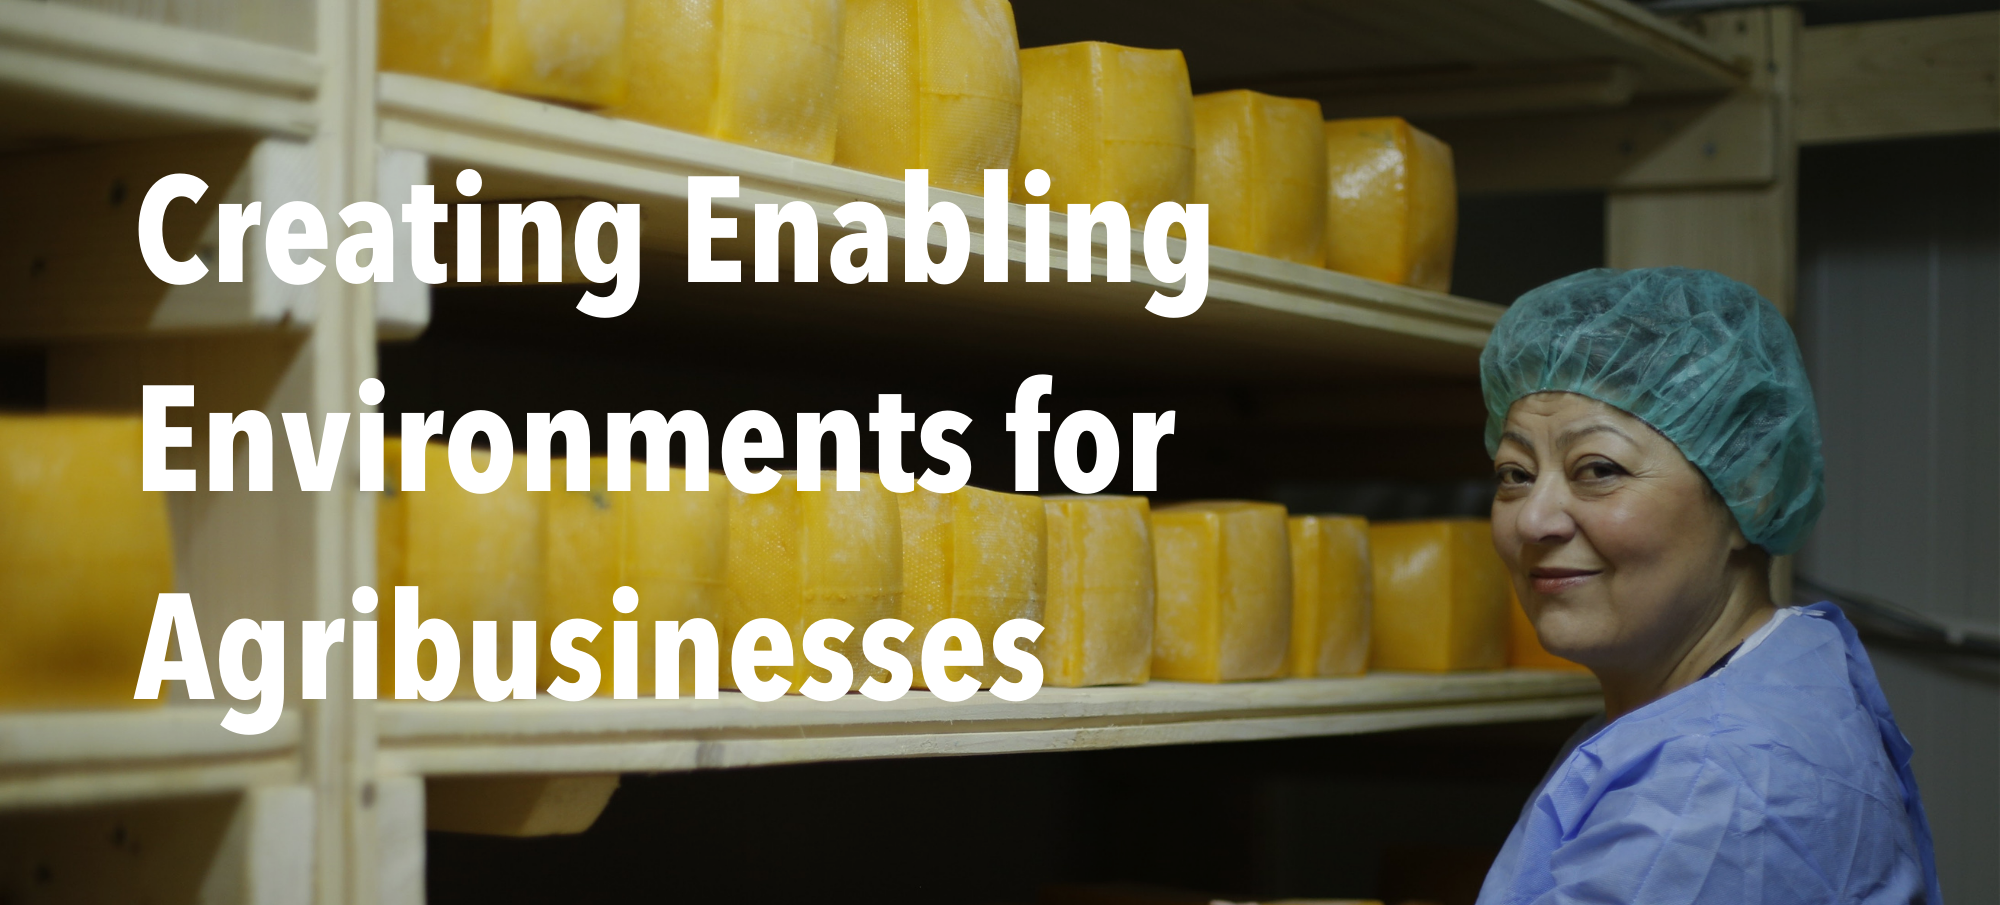 """Woman with packaged goods and header text """"Creating Enabling Environments for Agribusinesses"""""""